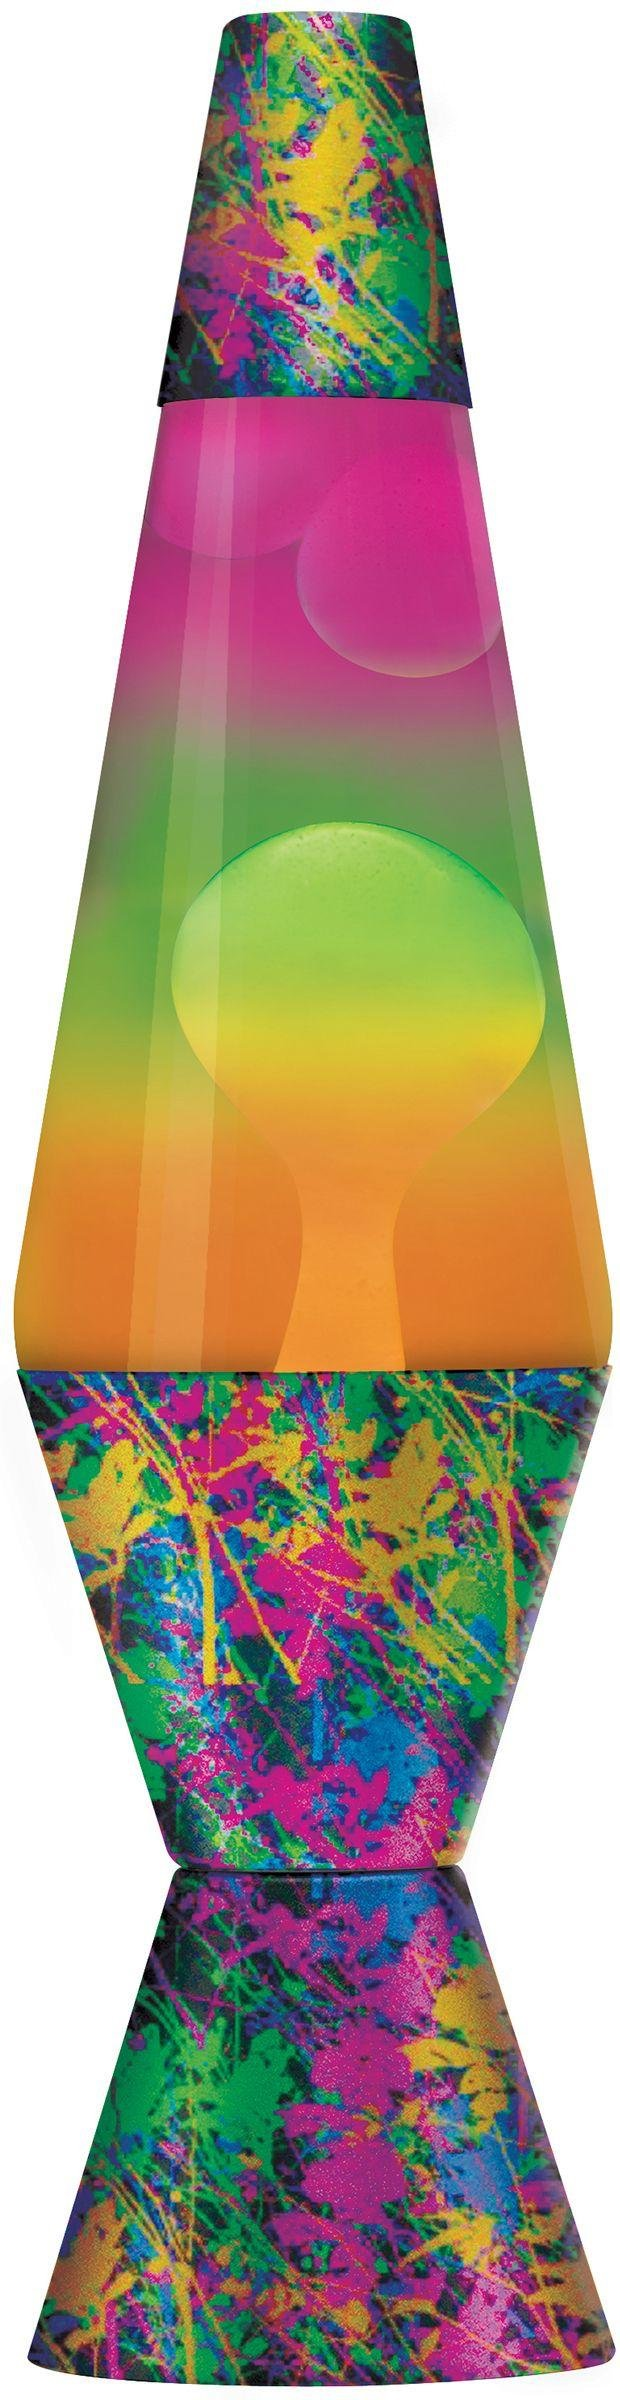 Lava 14.5in ColourMax Paintball Lava Lamp - White & Clear